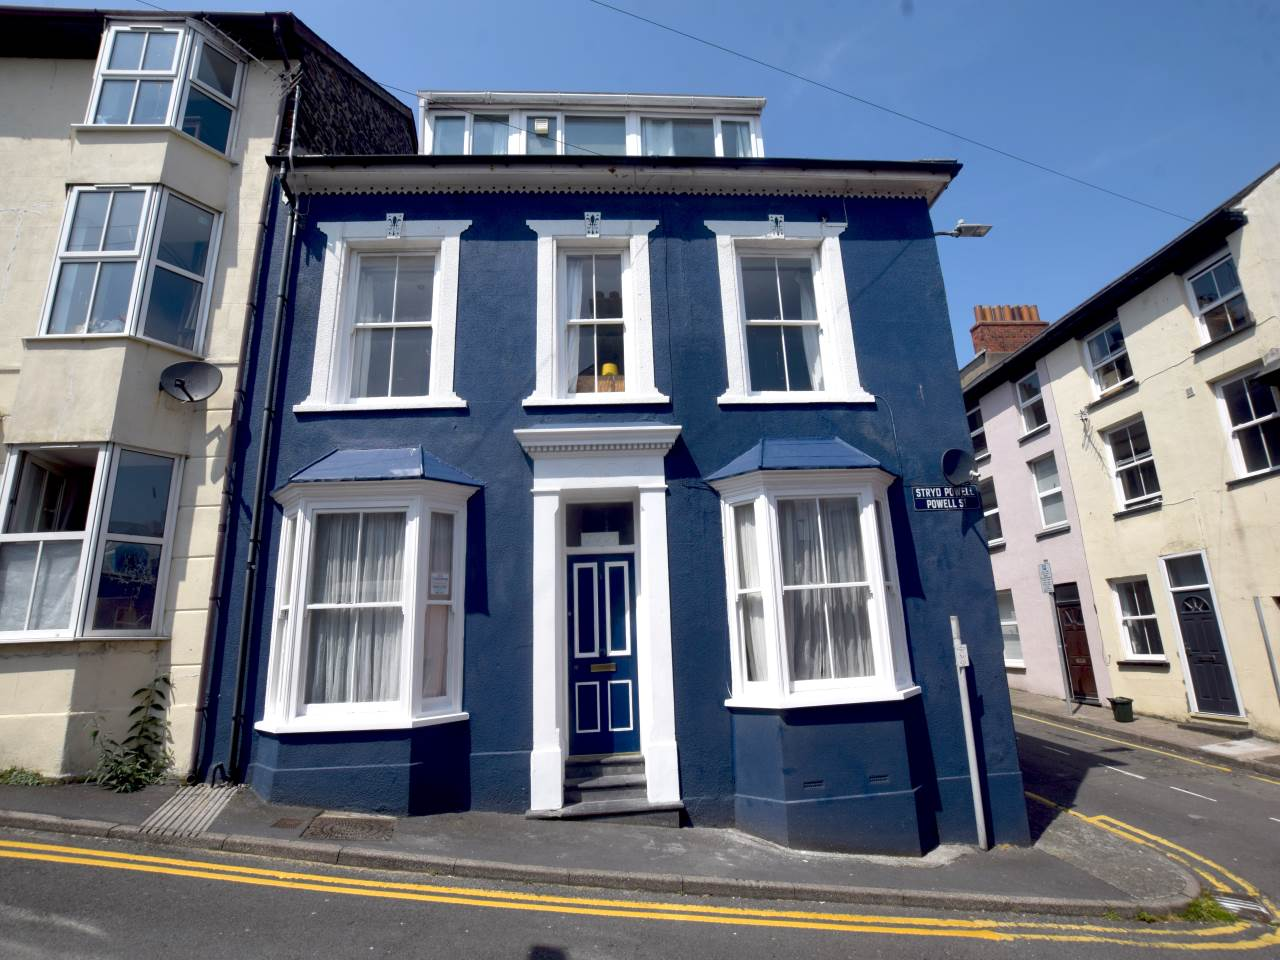 4 bed house to rent in Powell Street, Aberystwyth - Property Image 1